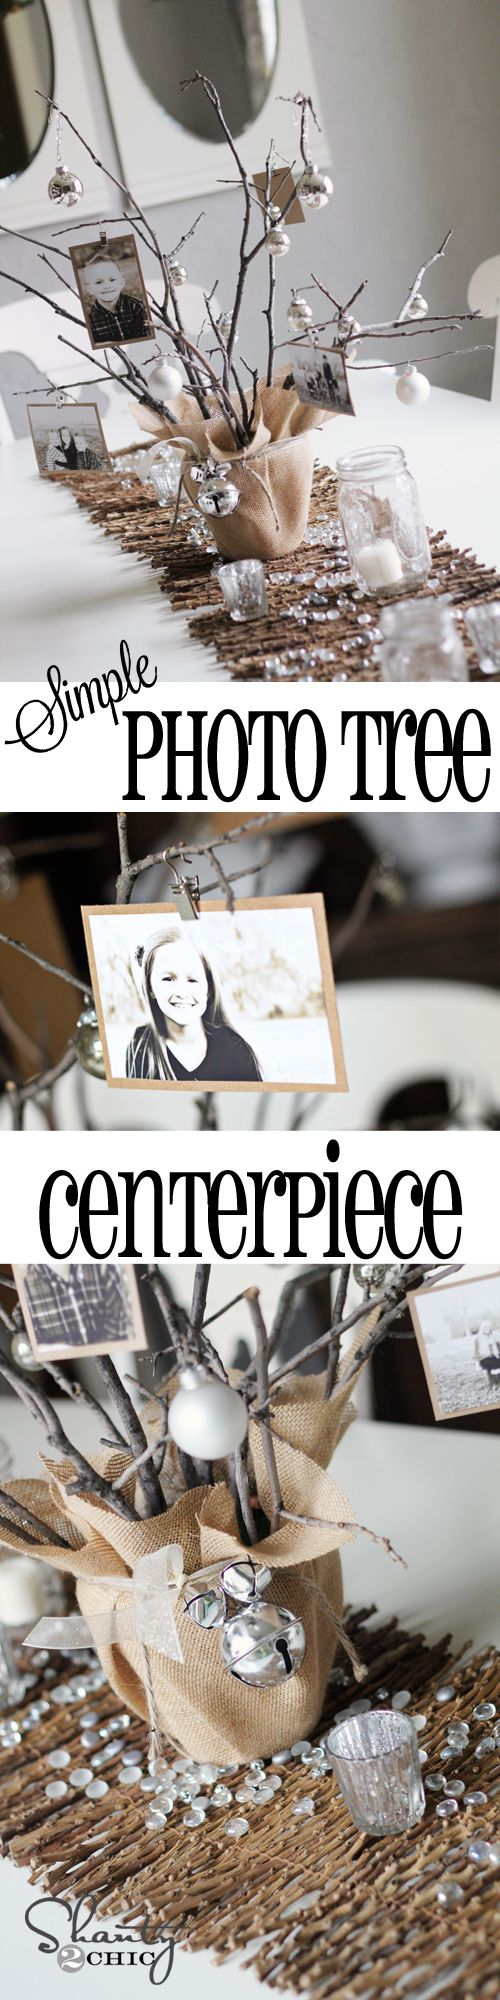 431 best parents 50th anniversary ideas images on for Quick and inexpensive wedding decorations